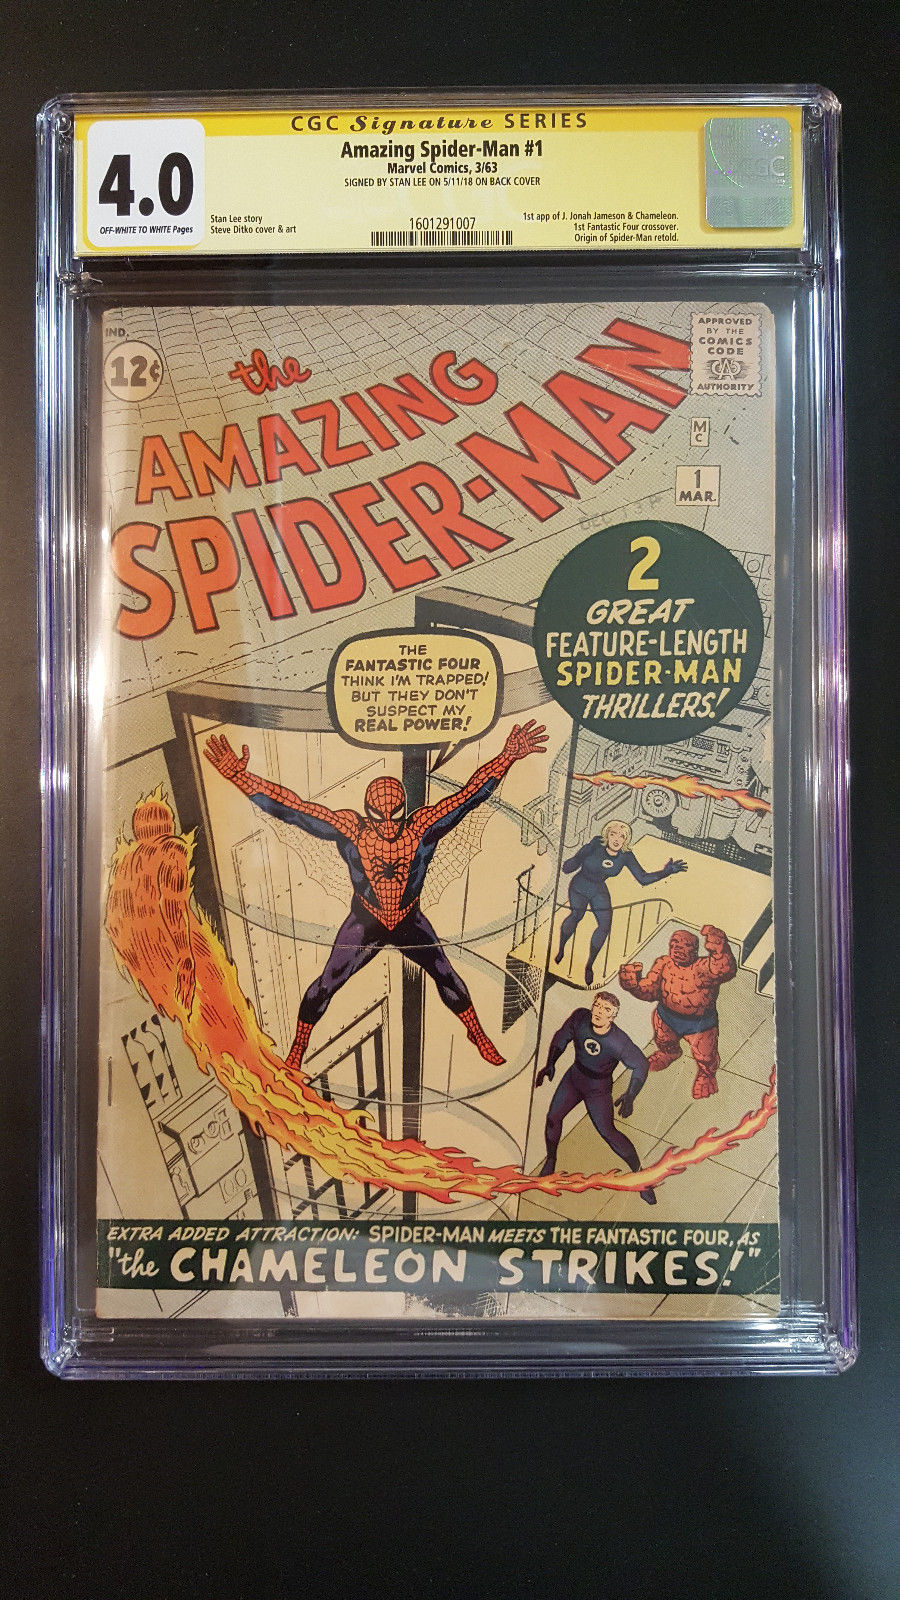 THE AMAZING SPIDERMAN # 1 CGC 4.0 SS STAN LEE 1ST FANTASTIC FOUR ASM